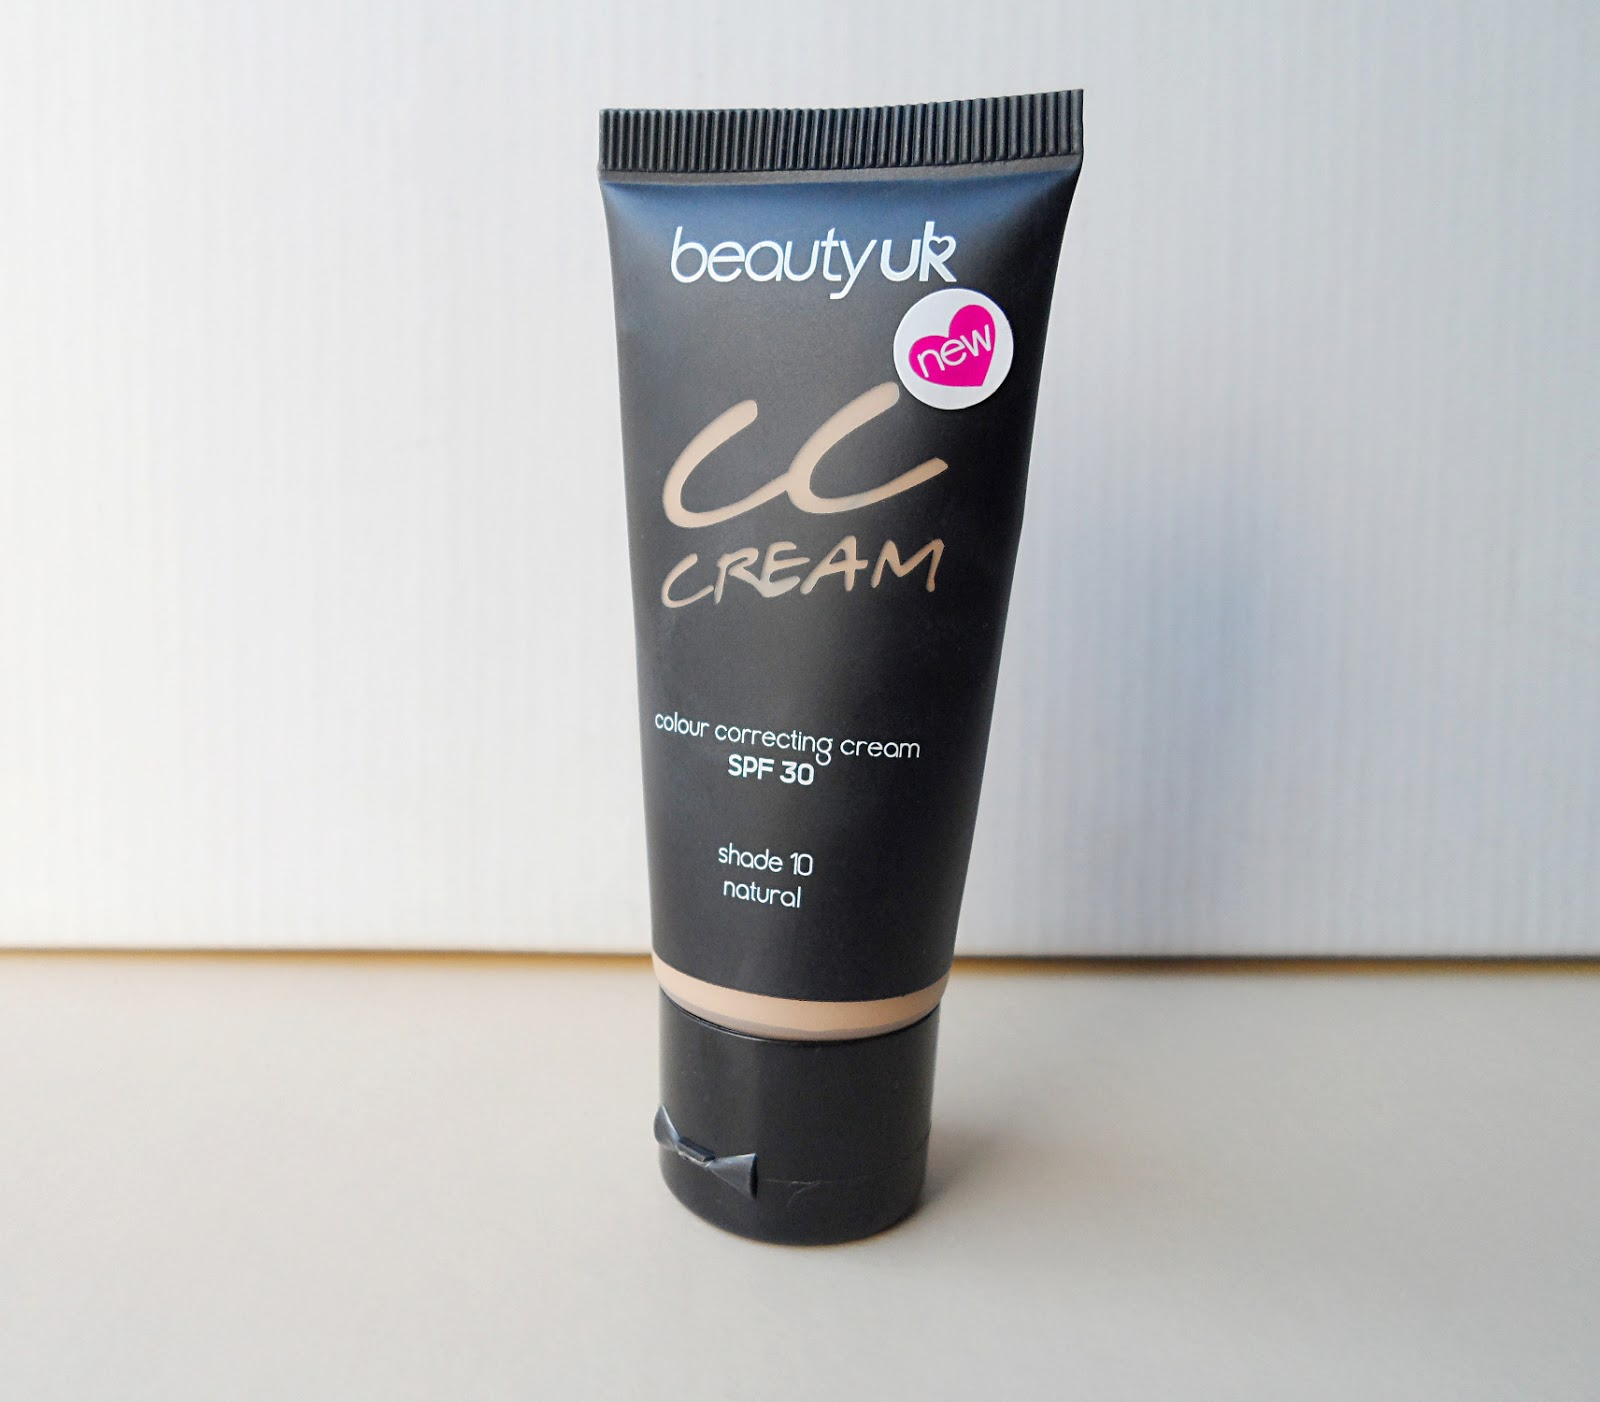 Beauty UK CC Cream / Review & Swatches | January Girl